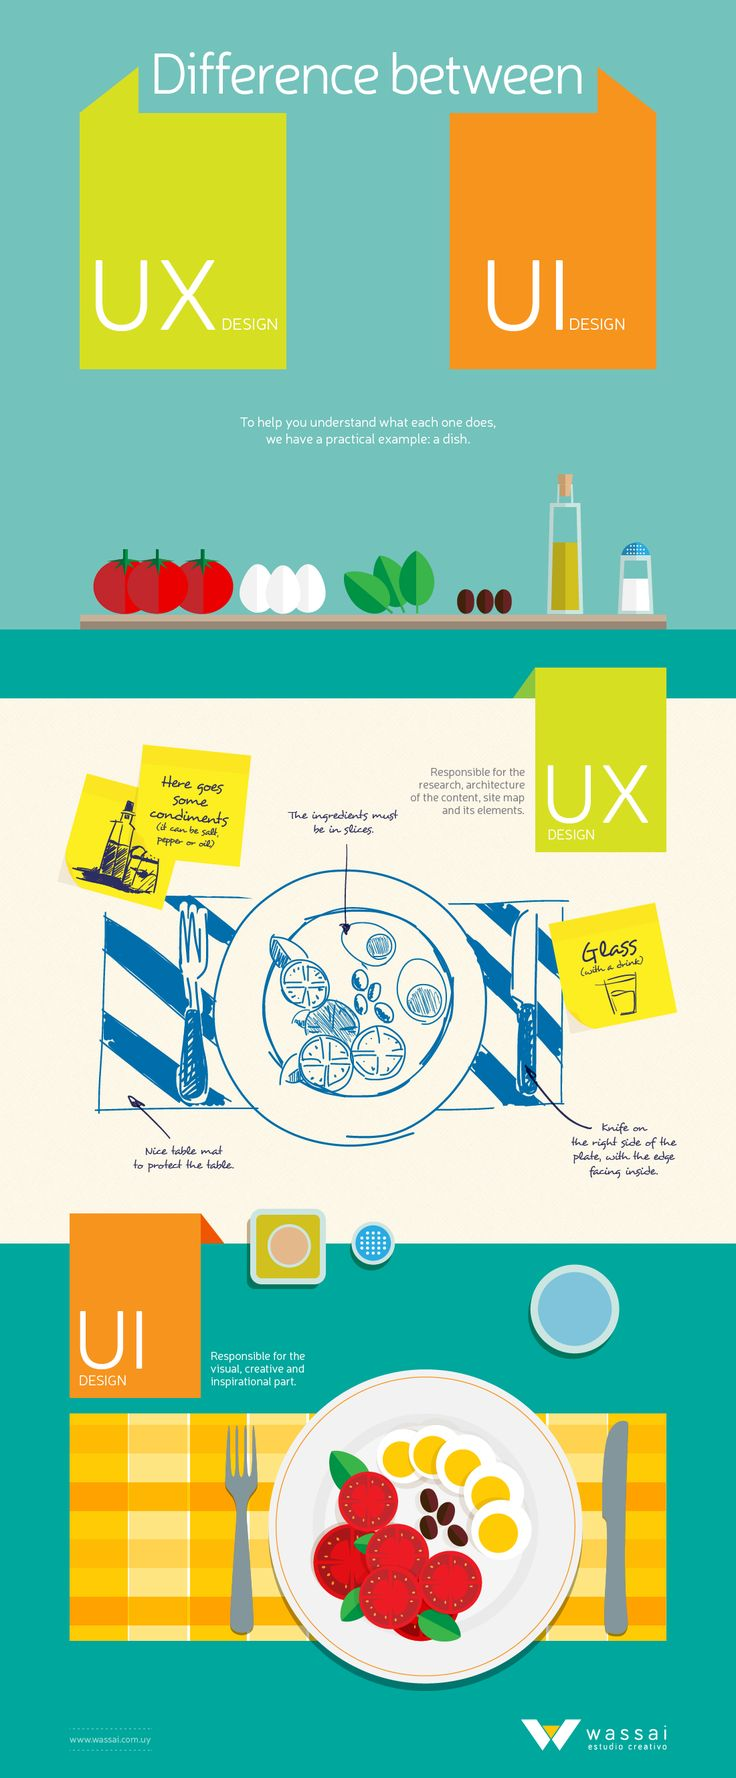 Understanding the Difference between UI and UX Design #infographic #marketing #web